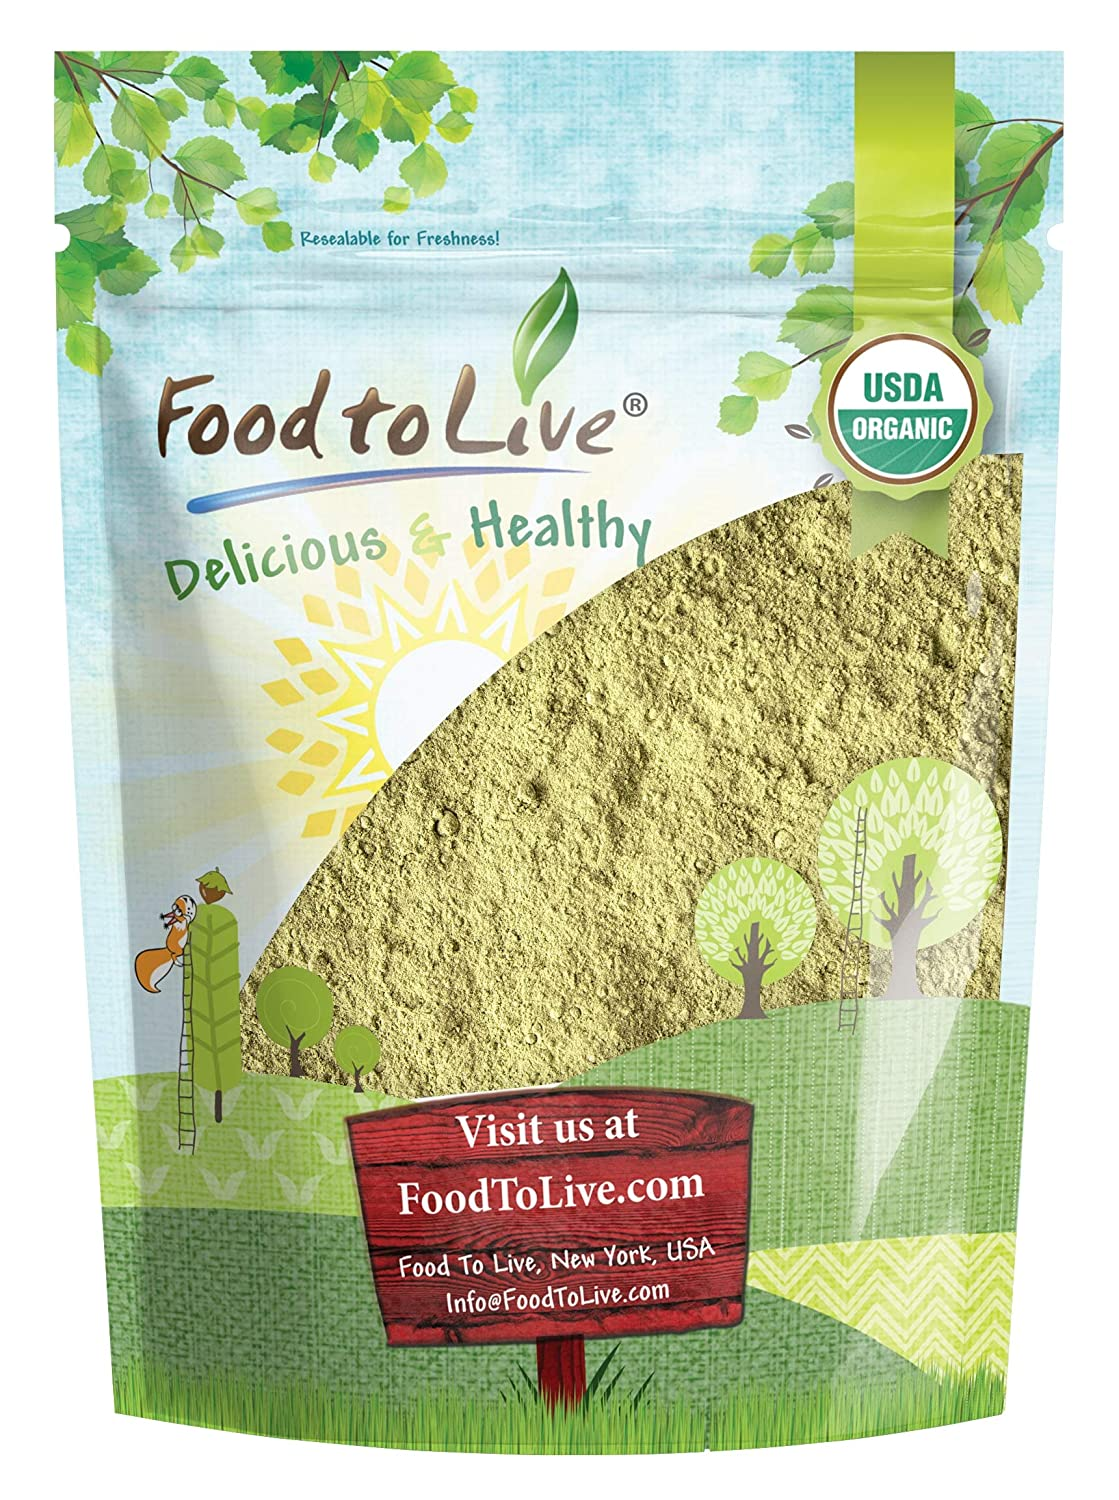 Organic Sprouted Oat Powder, 2 Pounds — Non-GMO Whole Grain Powder, Pure, Vegan Superfood, Bulk, Good Source of Iron, Product of the USA